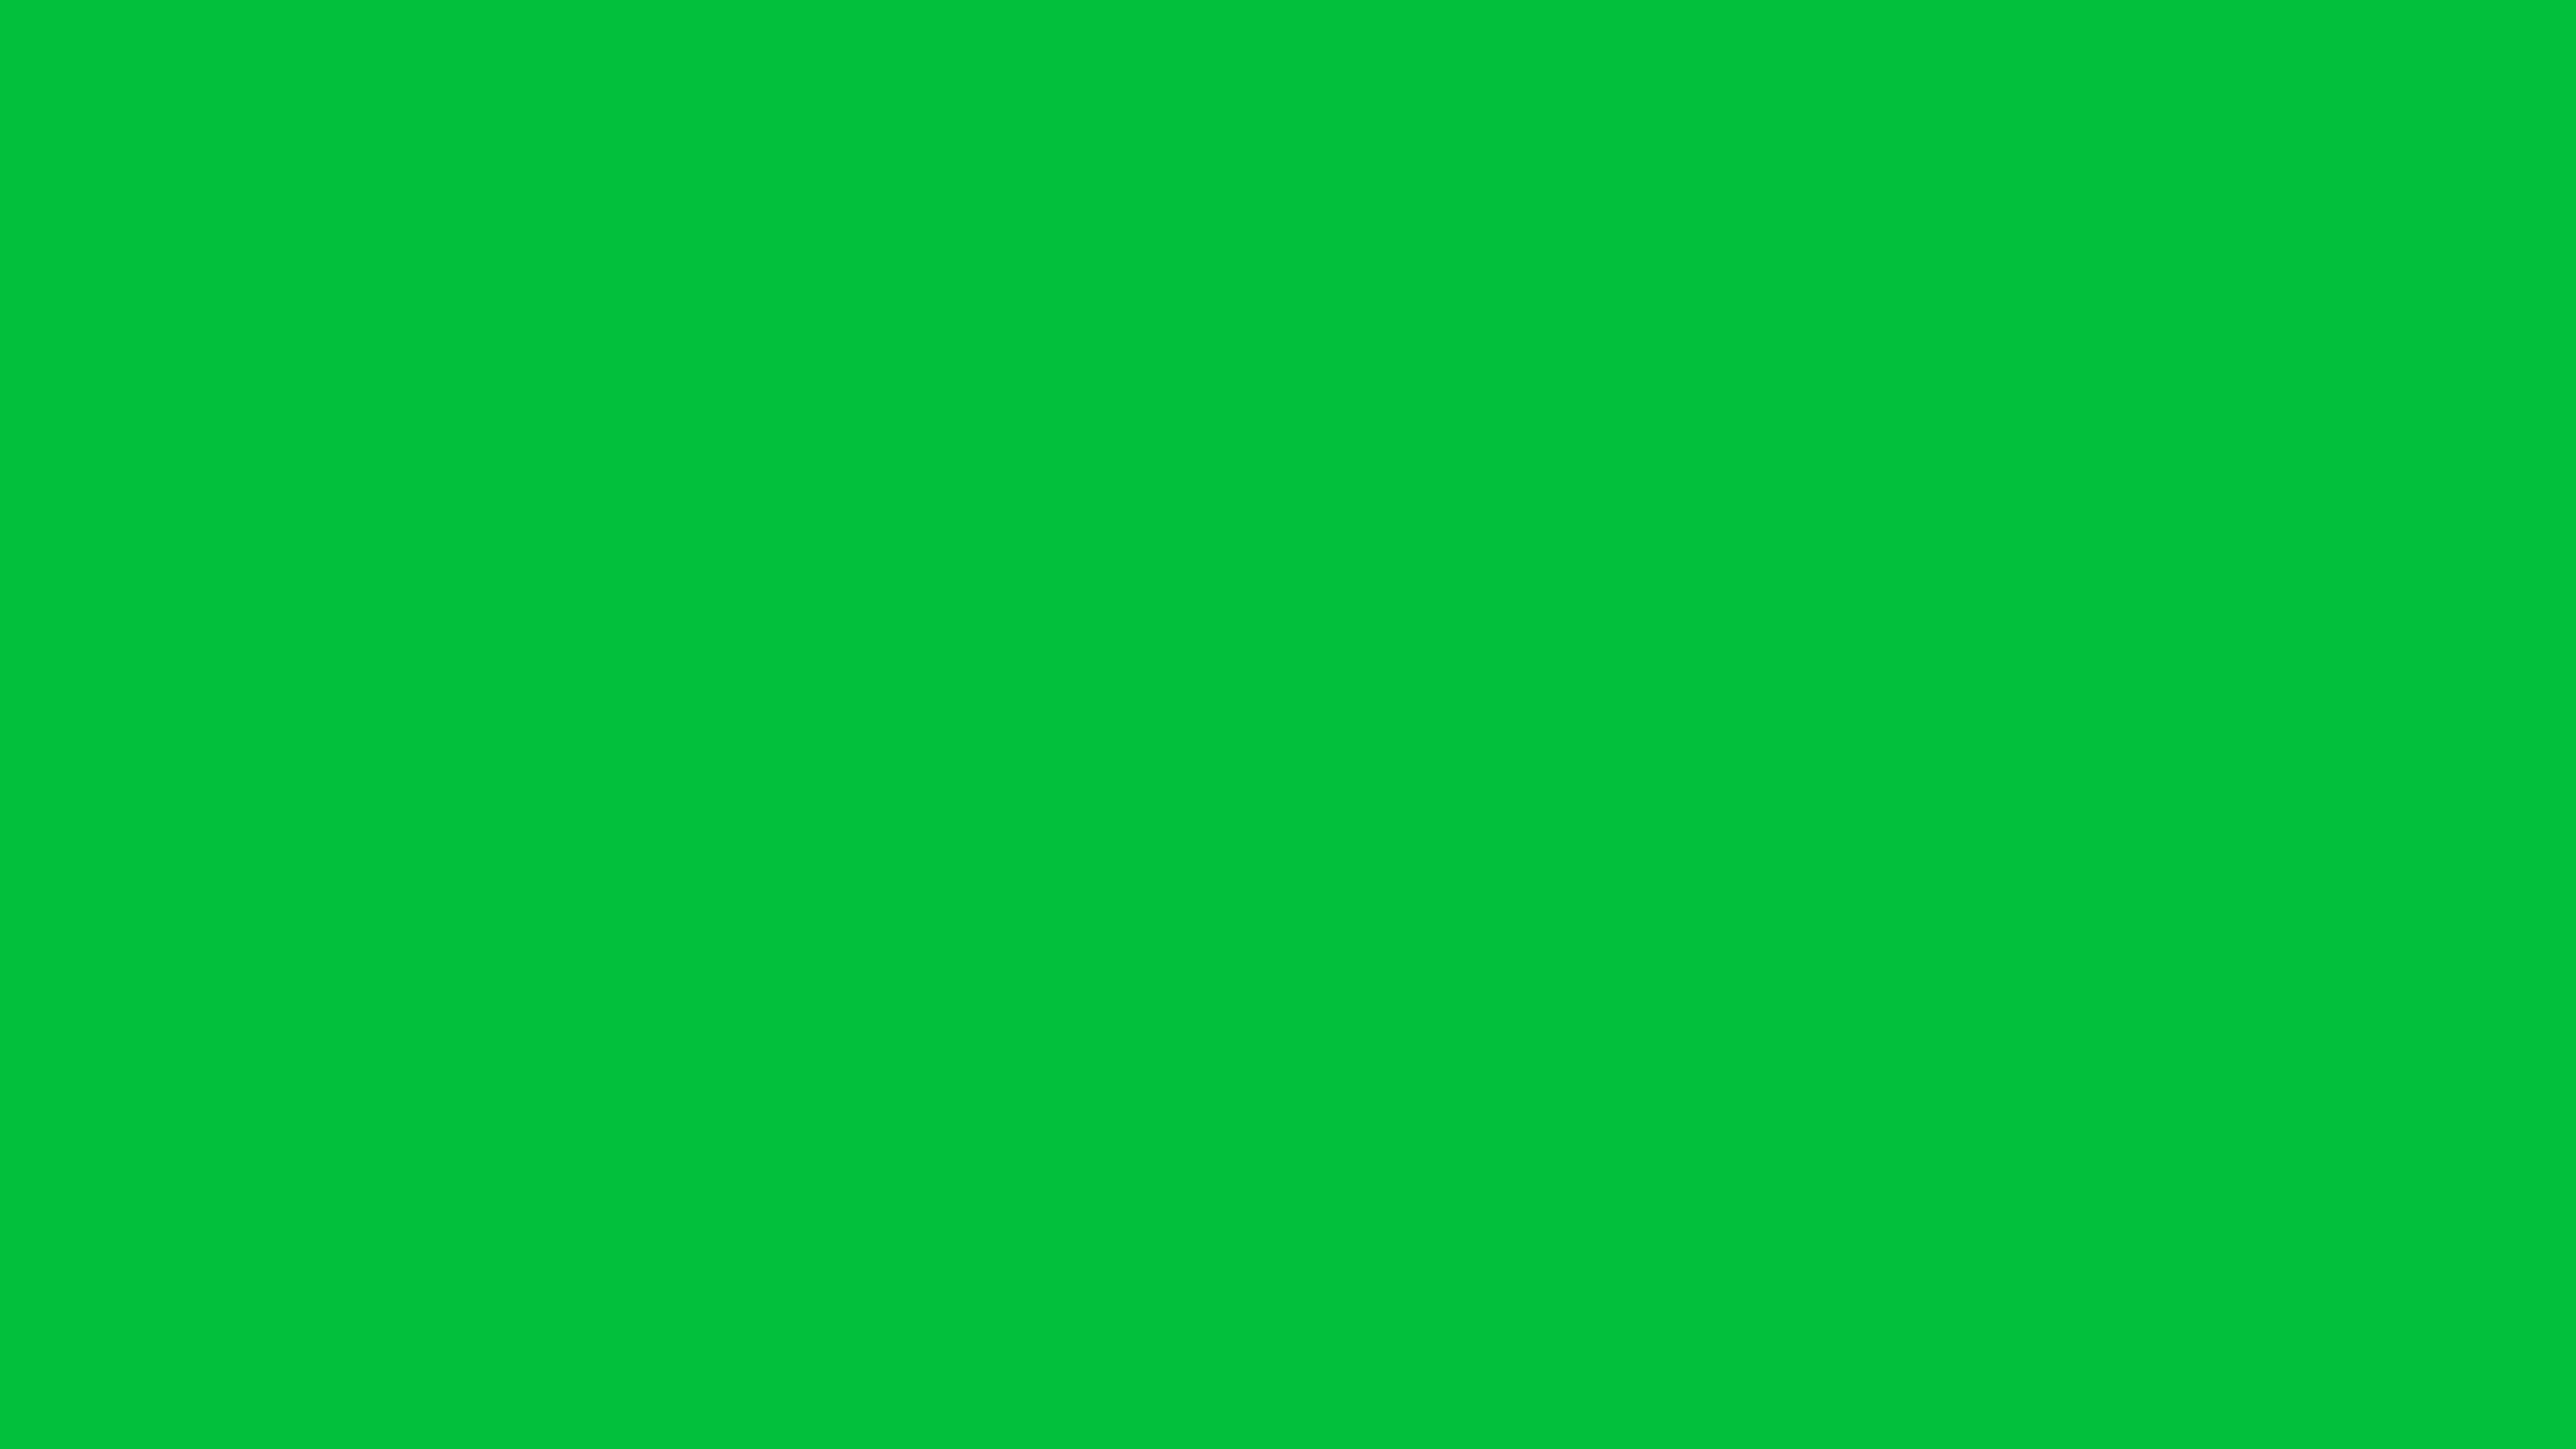 5120x2880 - Solid Green 29